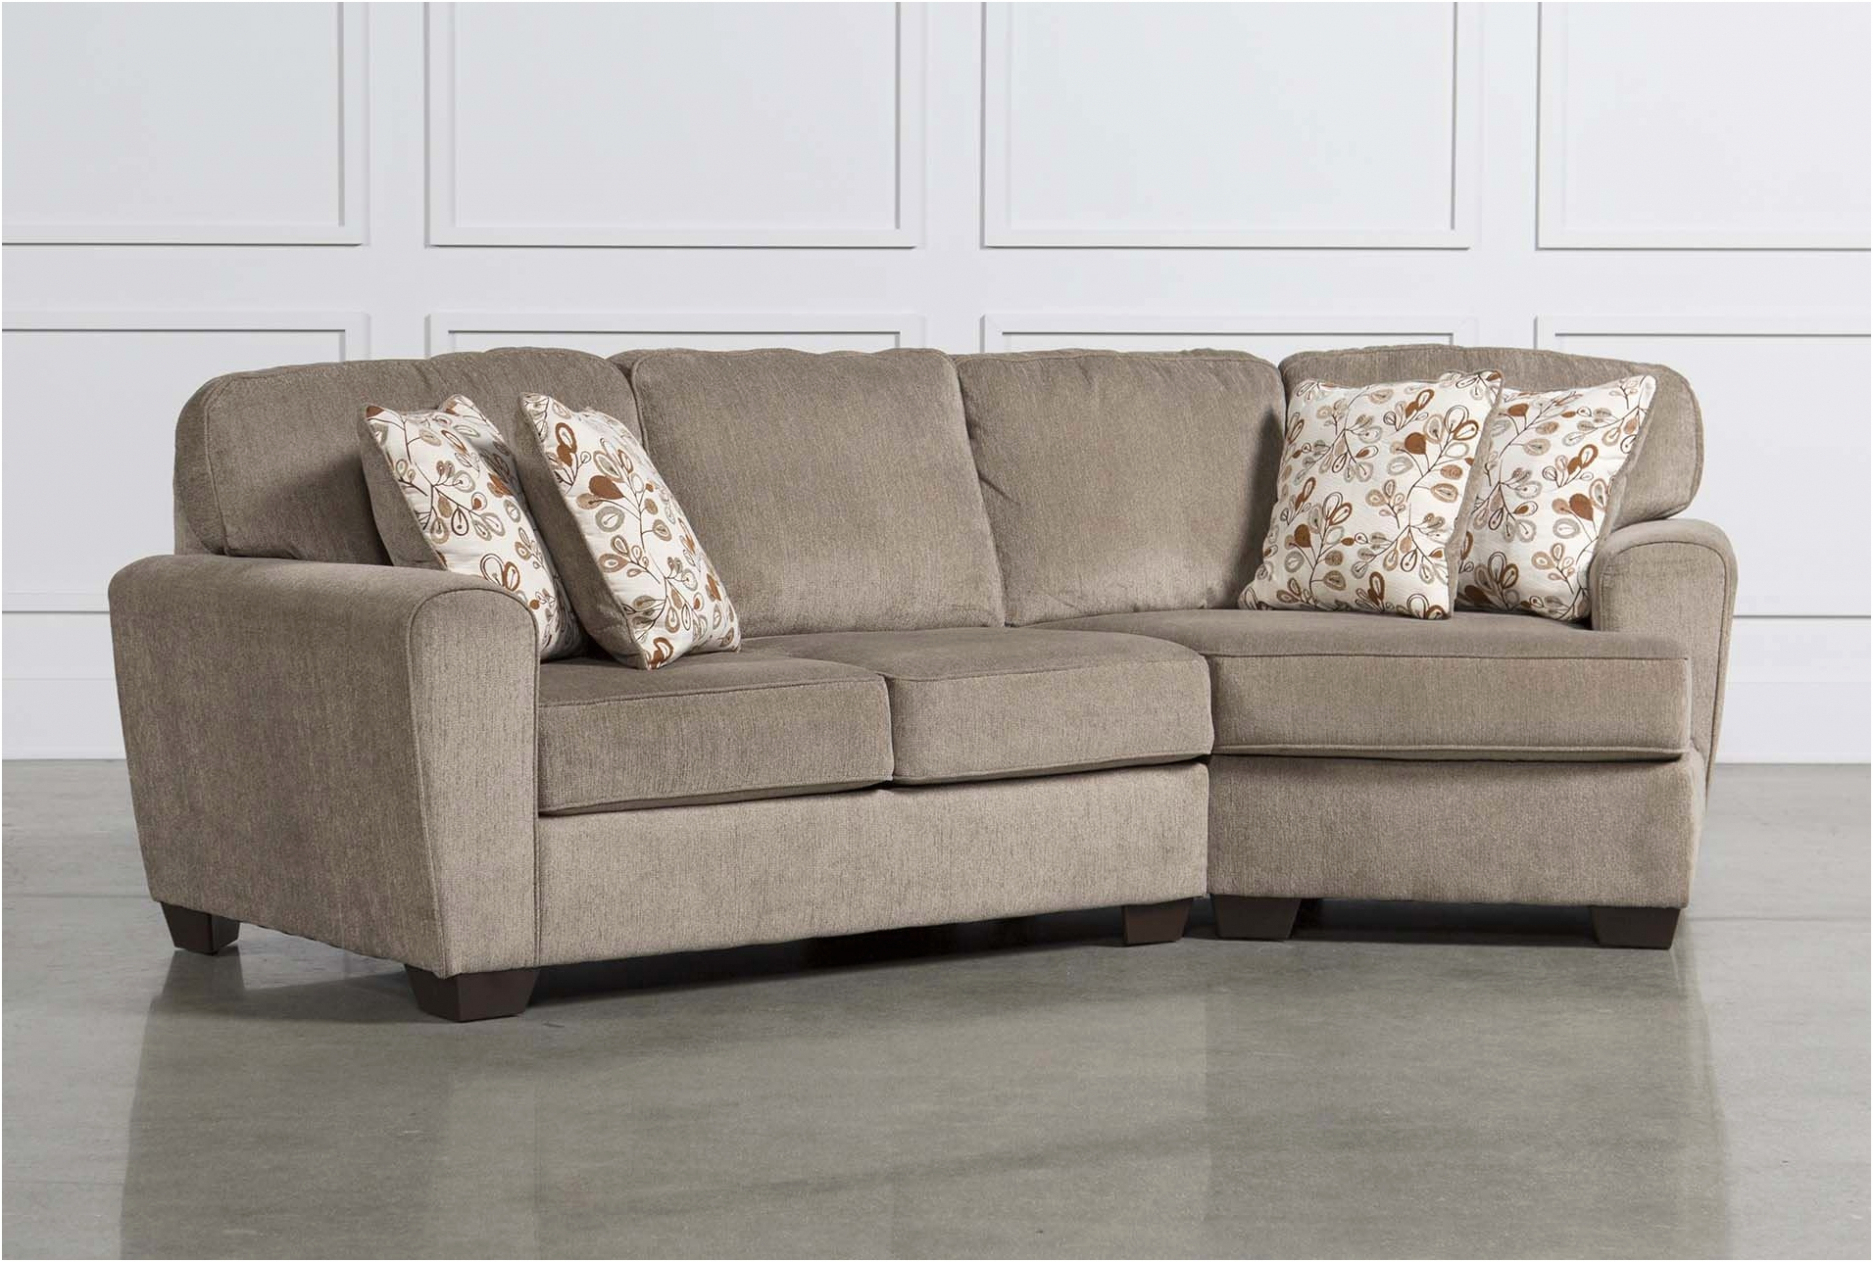 Newest Living Spaces Sectional Sofa Bed – Sofa Design Ideas Intended For Aquarius Light Grey 2 Piece Sectionals With Laf Chaise (Gallery 14 of 20)